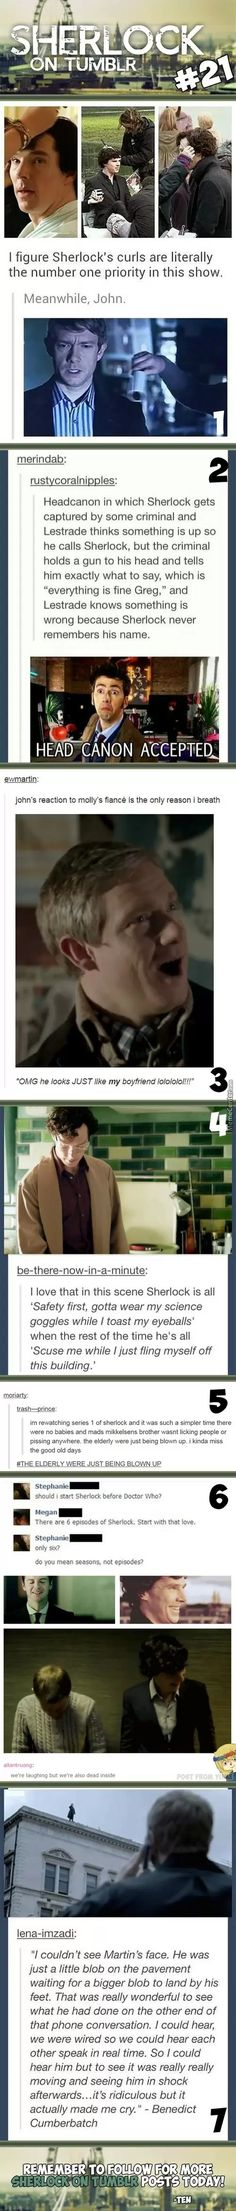 Sherlock On Tumblr #21